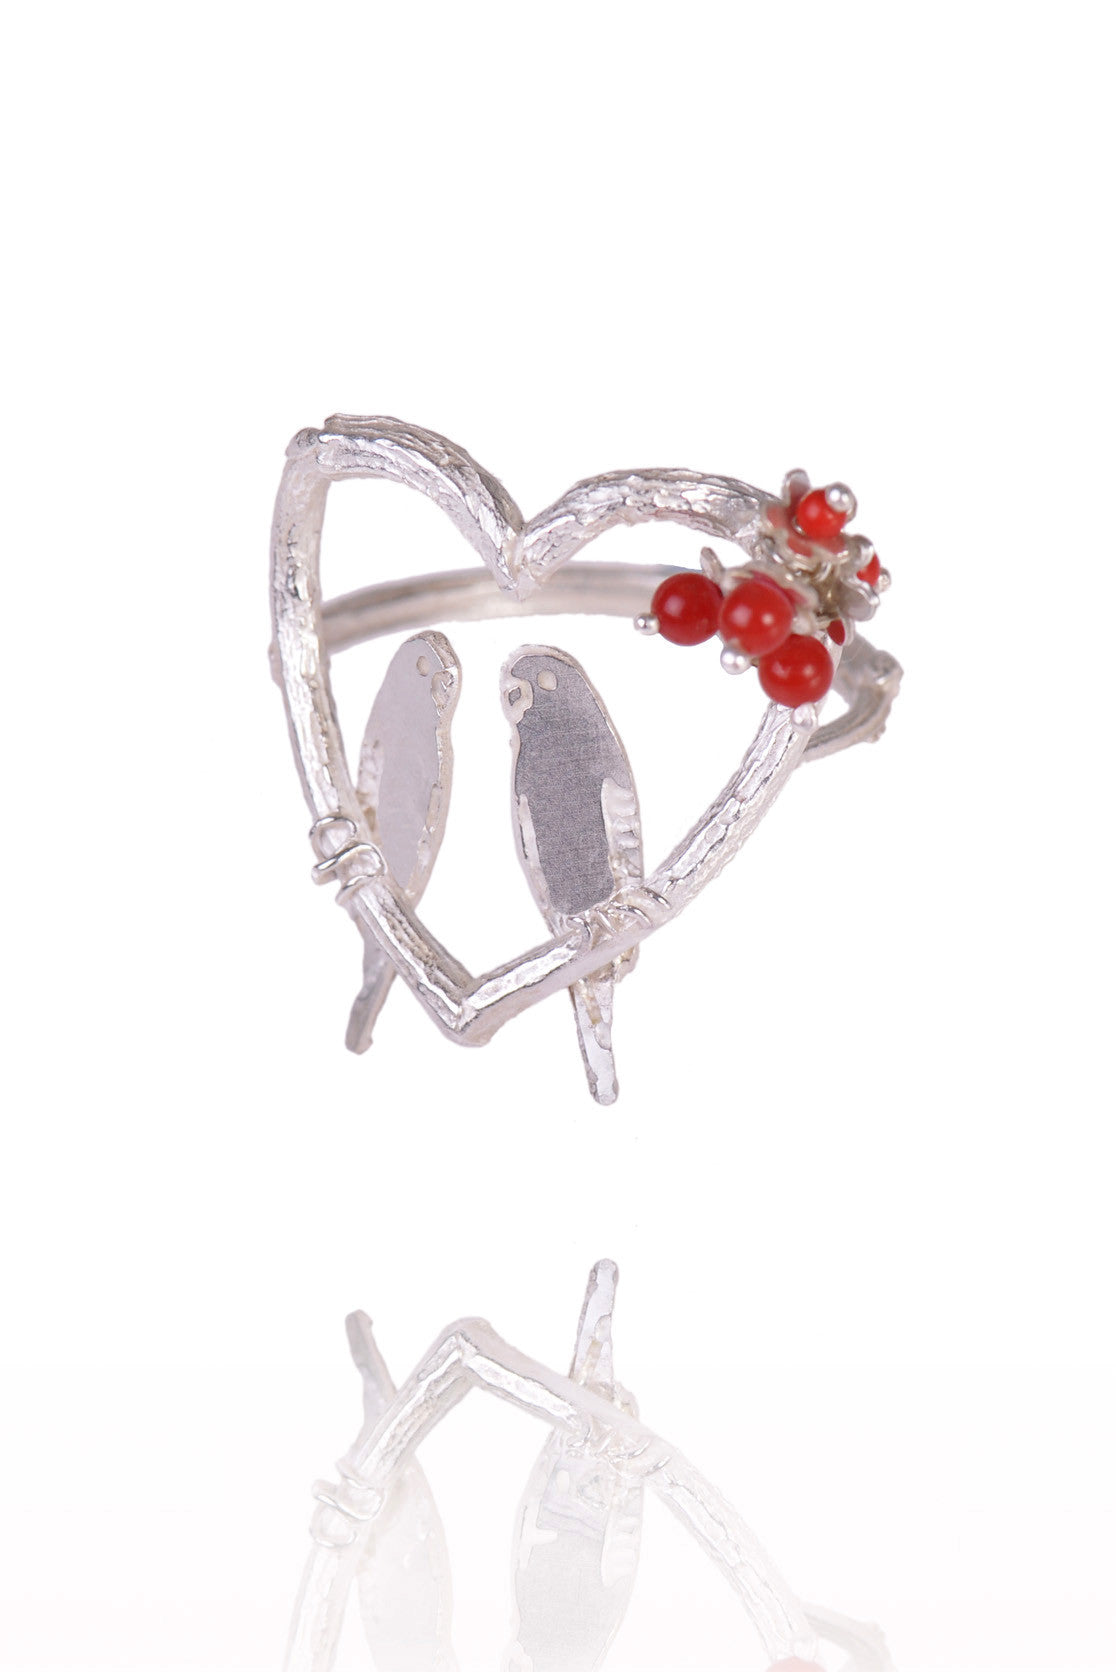 Love Birds in a Heart Ring